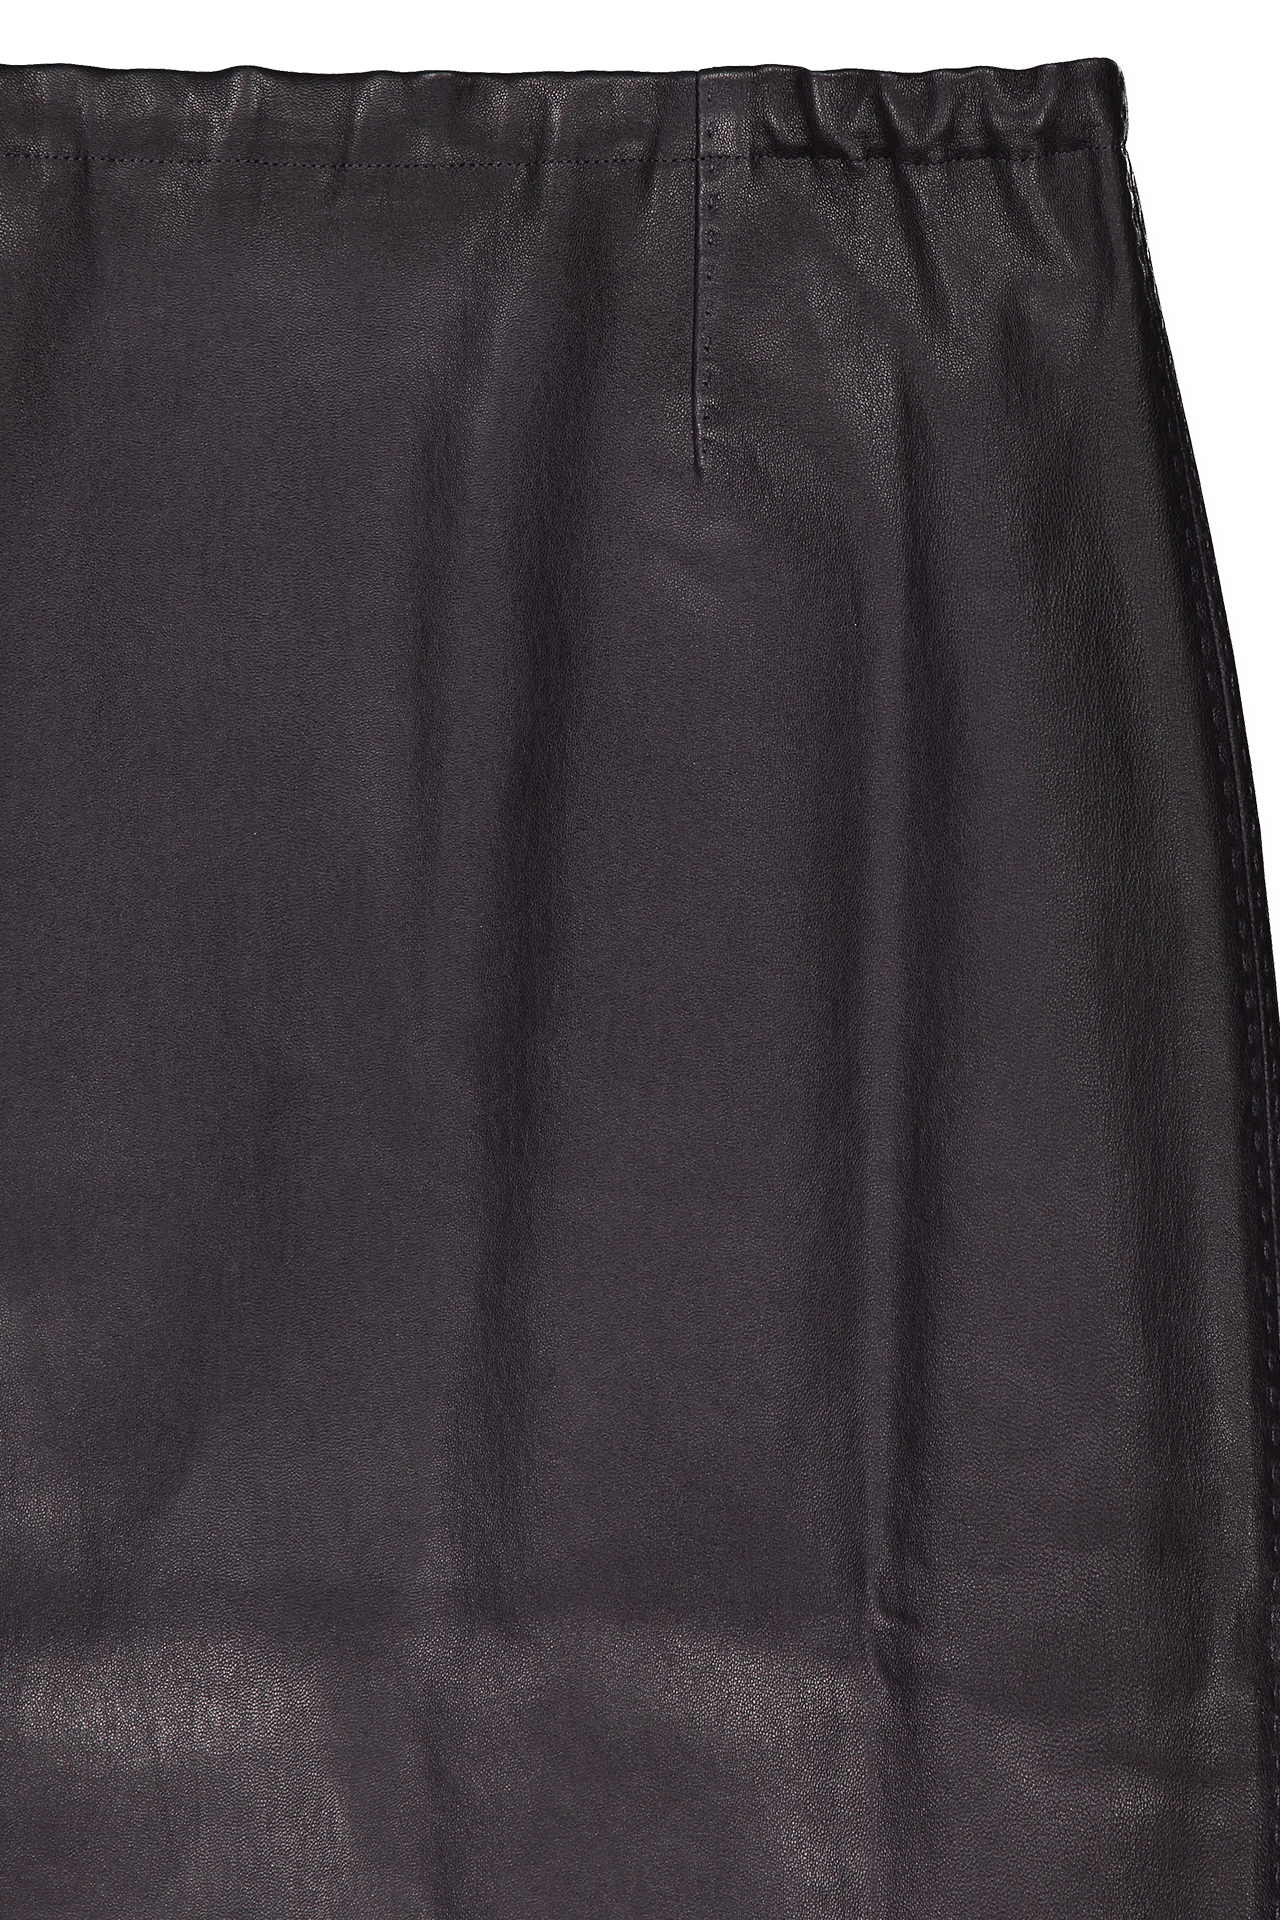 Front detail image of STOULS Gilda Lambskin Skirt Stylo